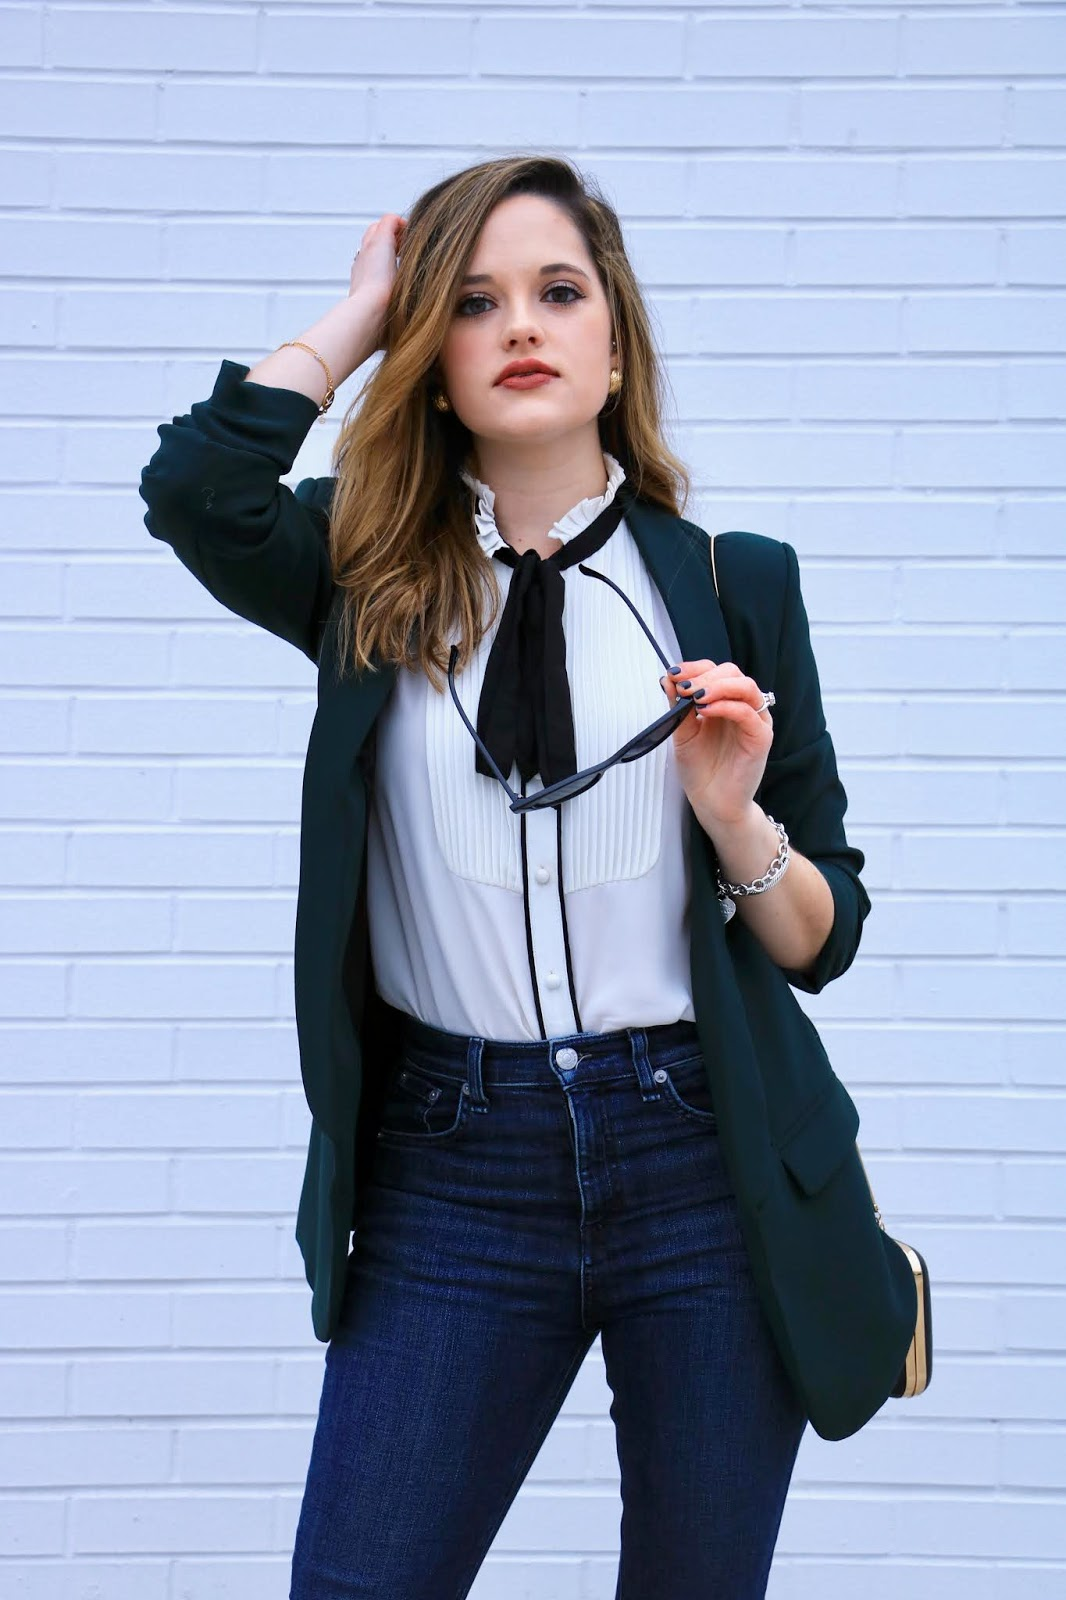 Nyc fashion blogger Kathleen Harper wearing a fitted long blazer outfit.